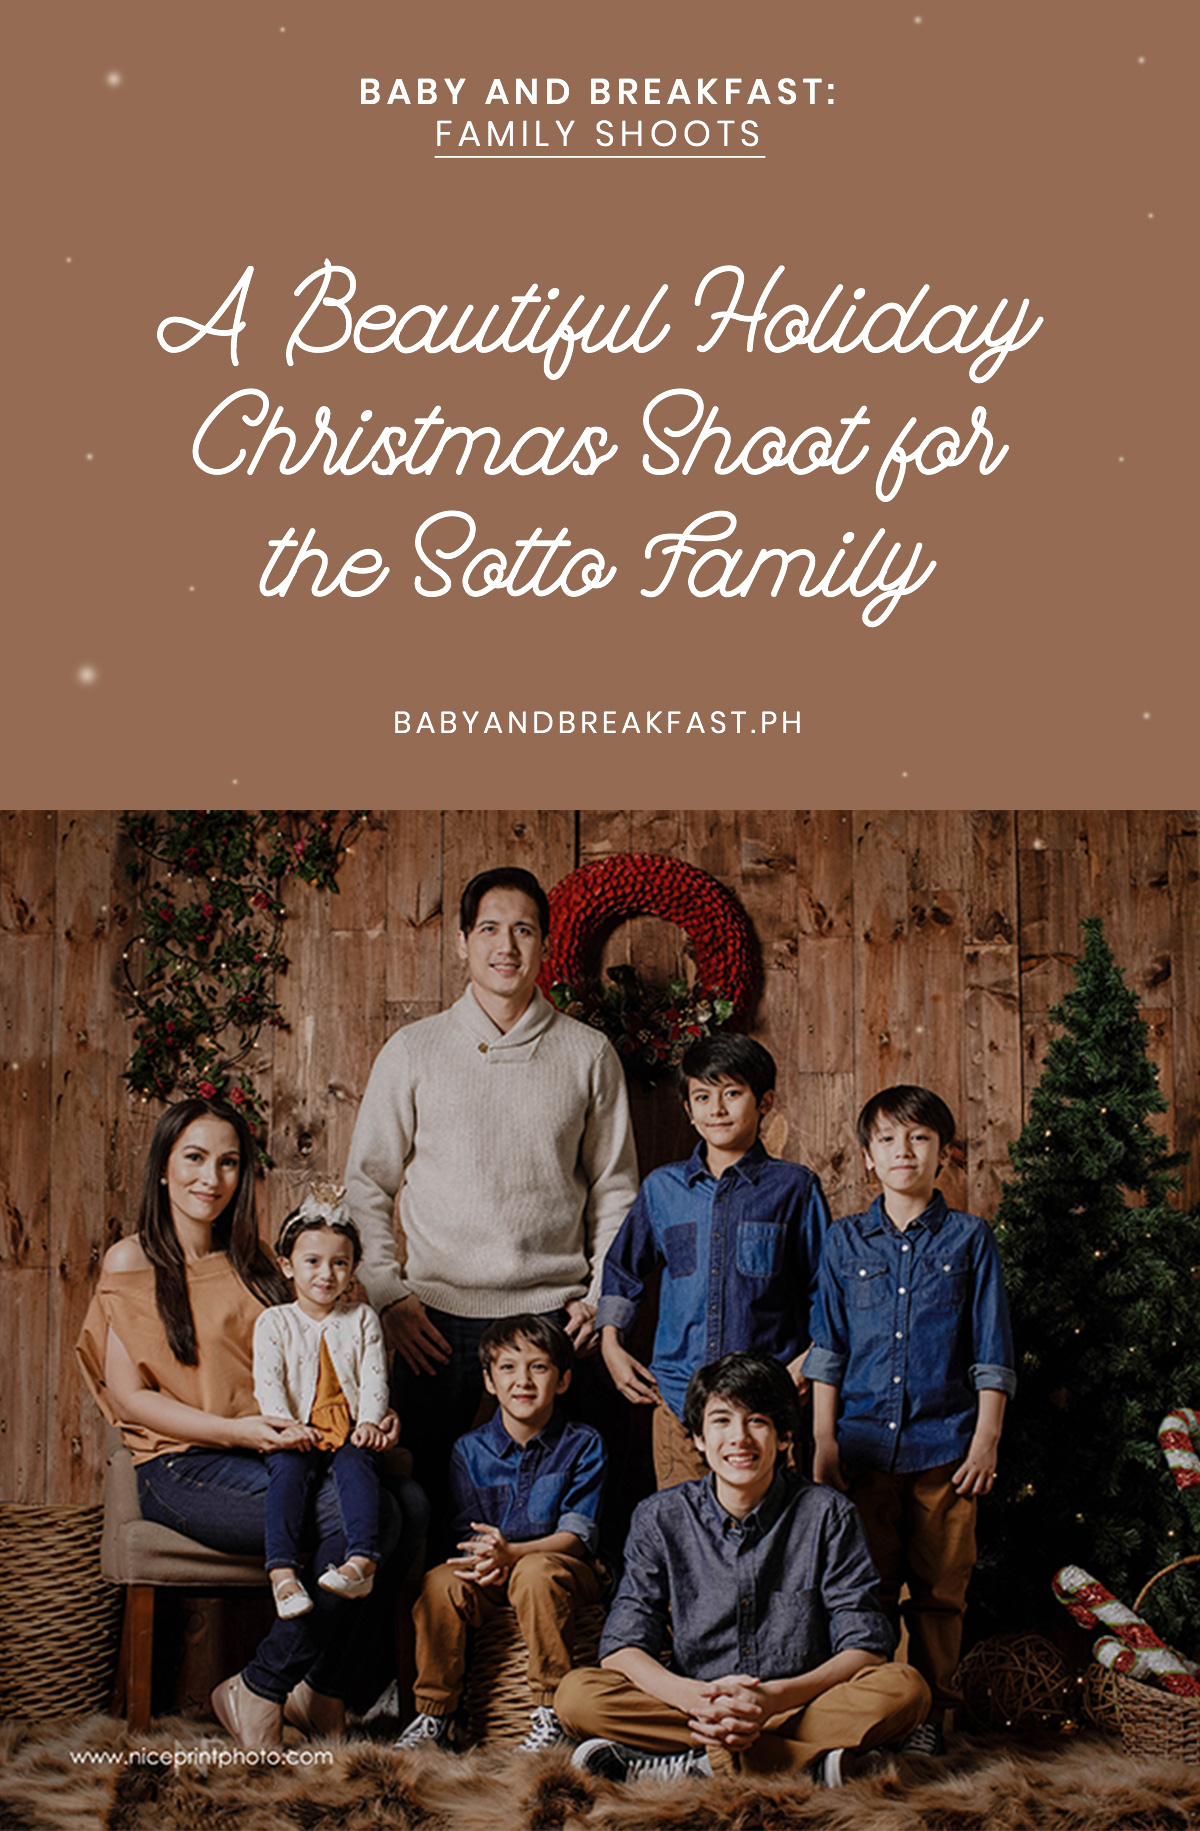 Baby and Breakfast: Family Shoots A Beautiful Holiday Christmas Shoot for the Sotto Family